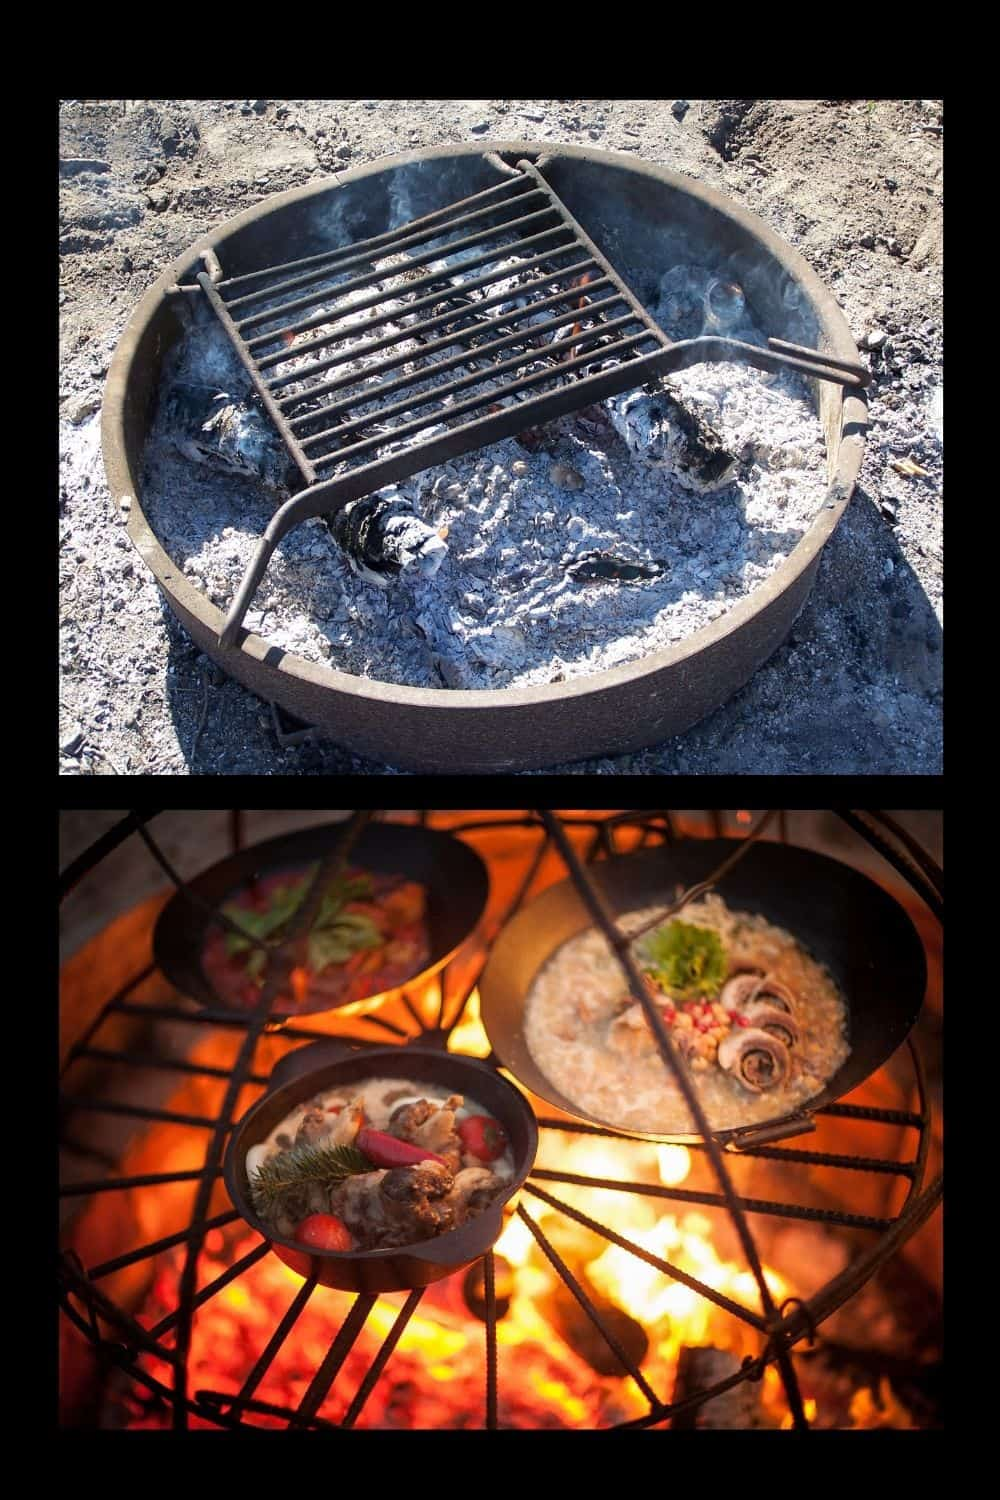 useful accessories for your fire pit are grates for cooking